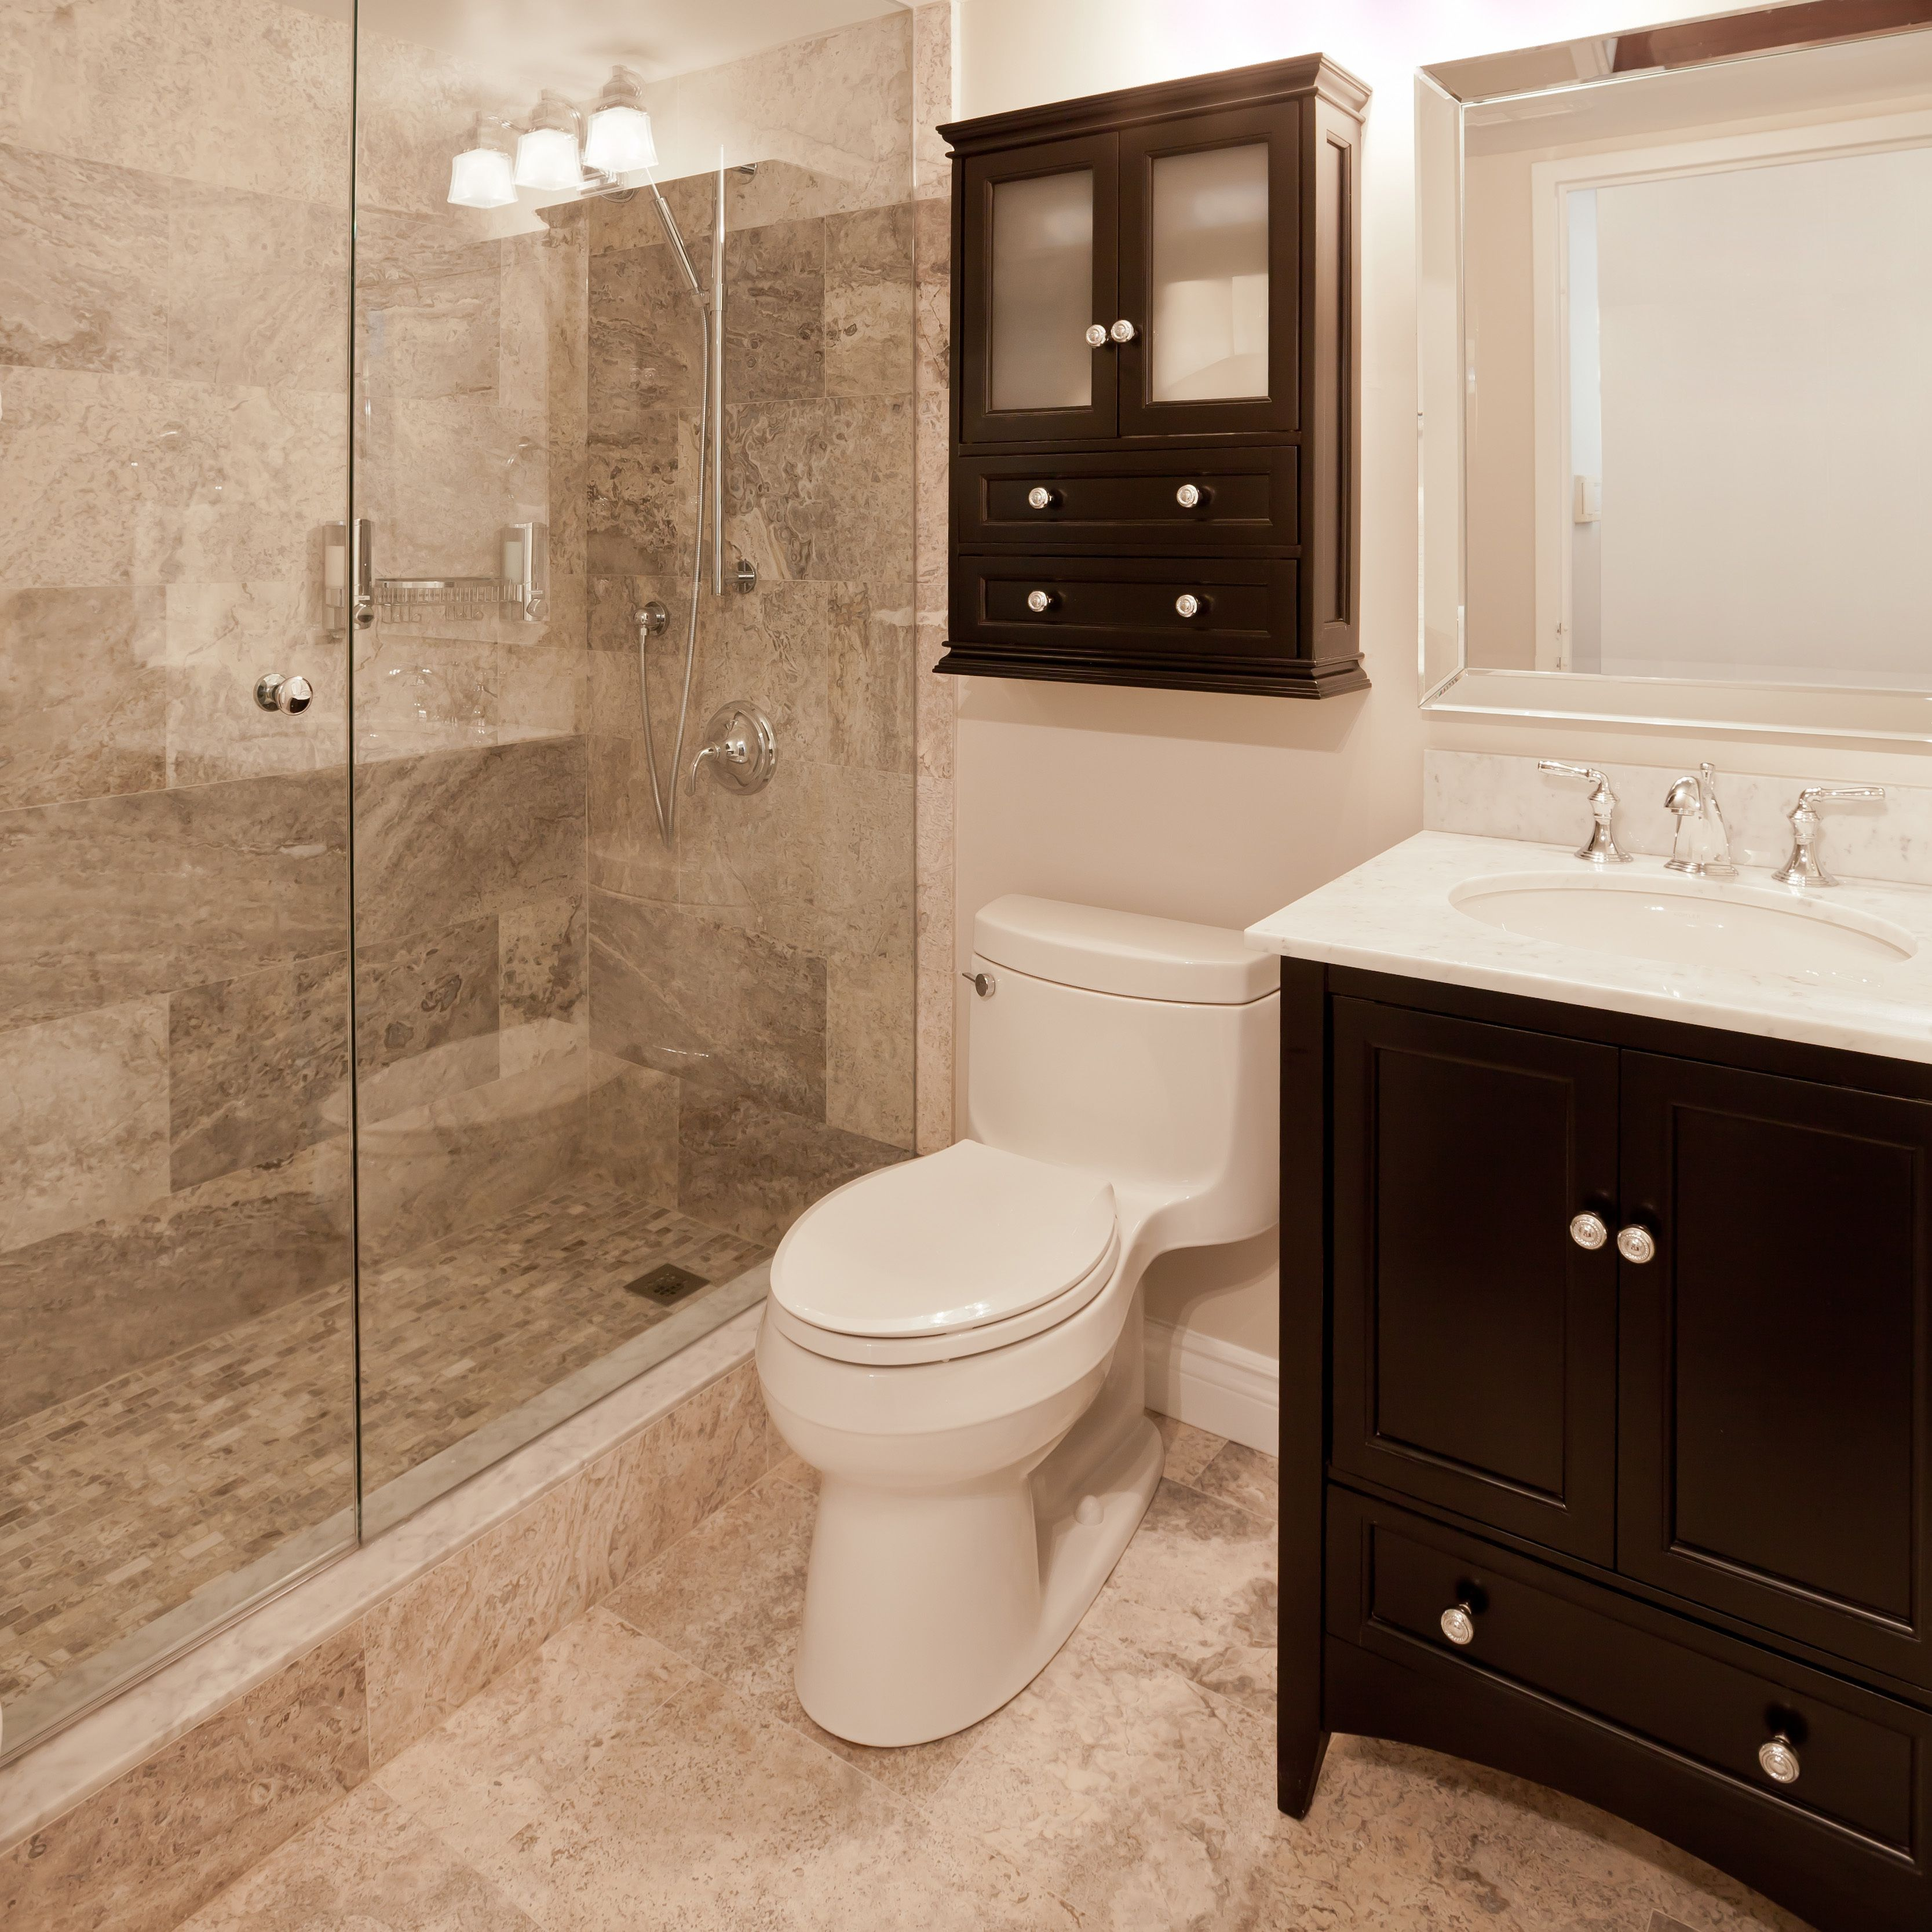 small sink vanity for small bathrooms%0A Beautiful small bath with walk in shower featuring travertine tile surround  tile flooring frameless glass enclosure